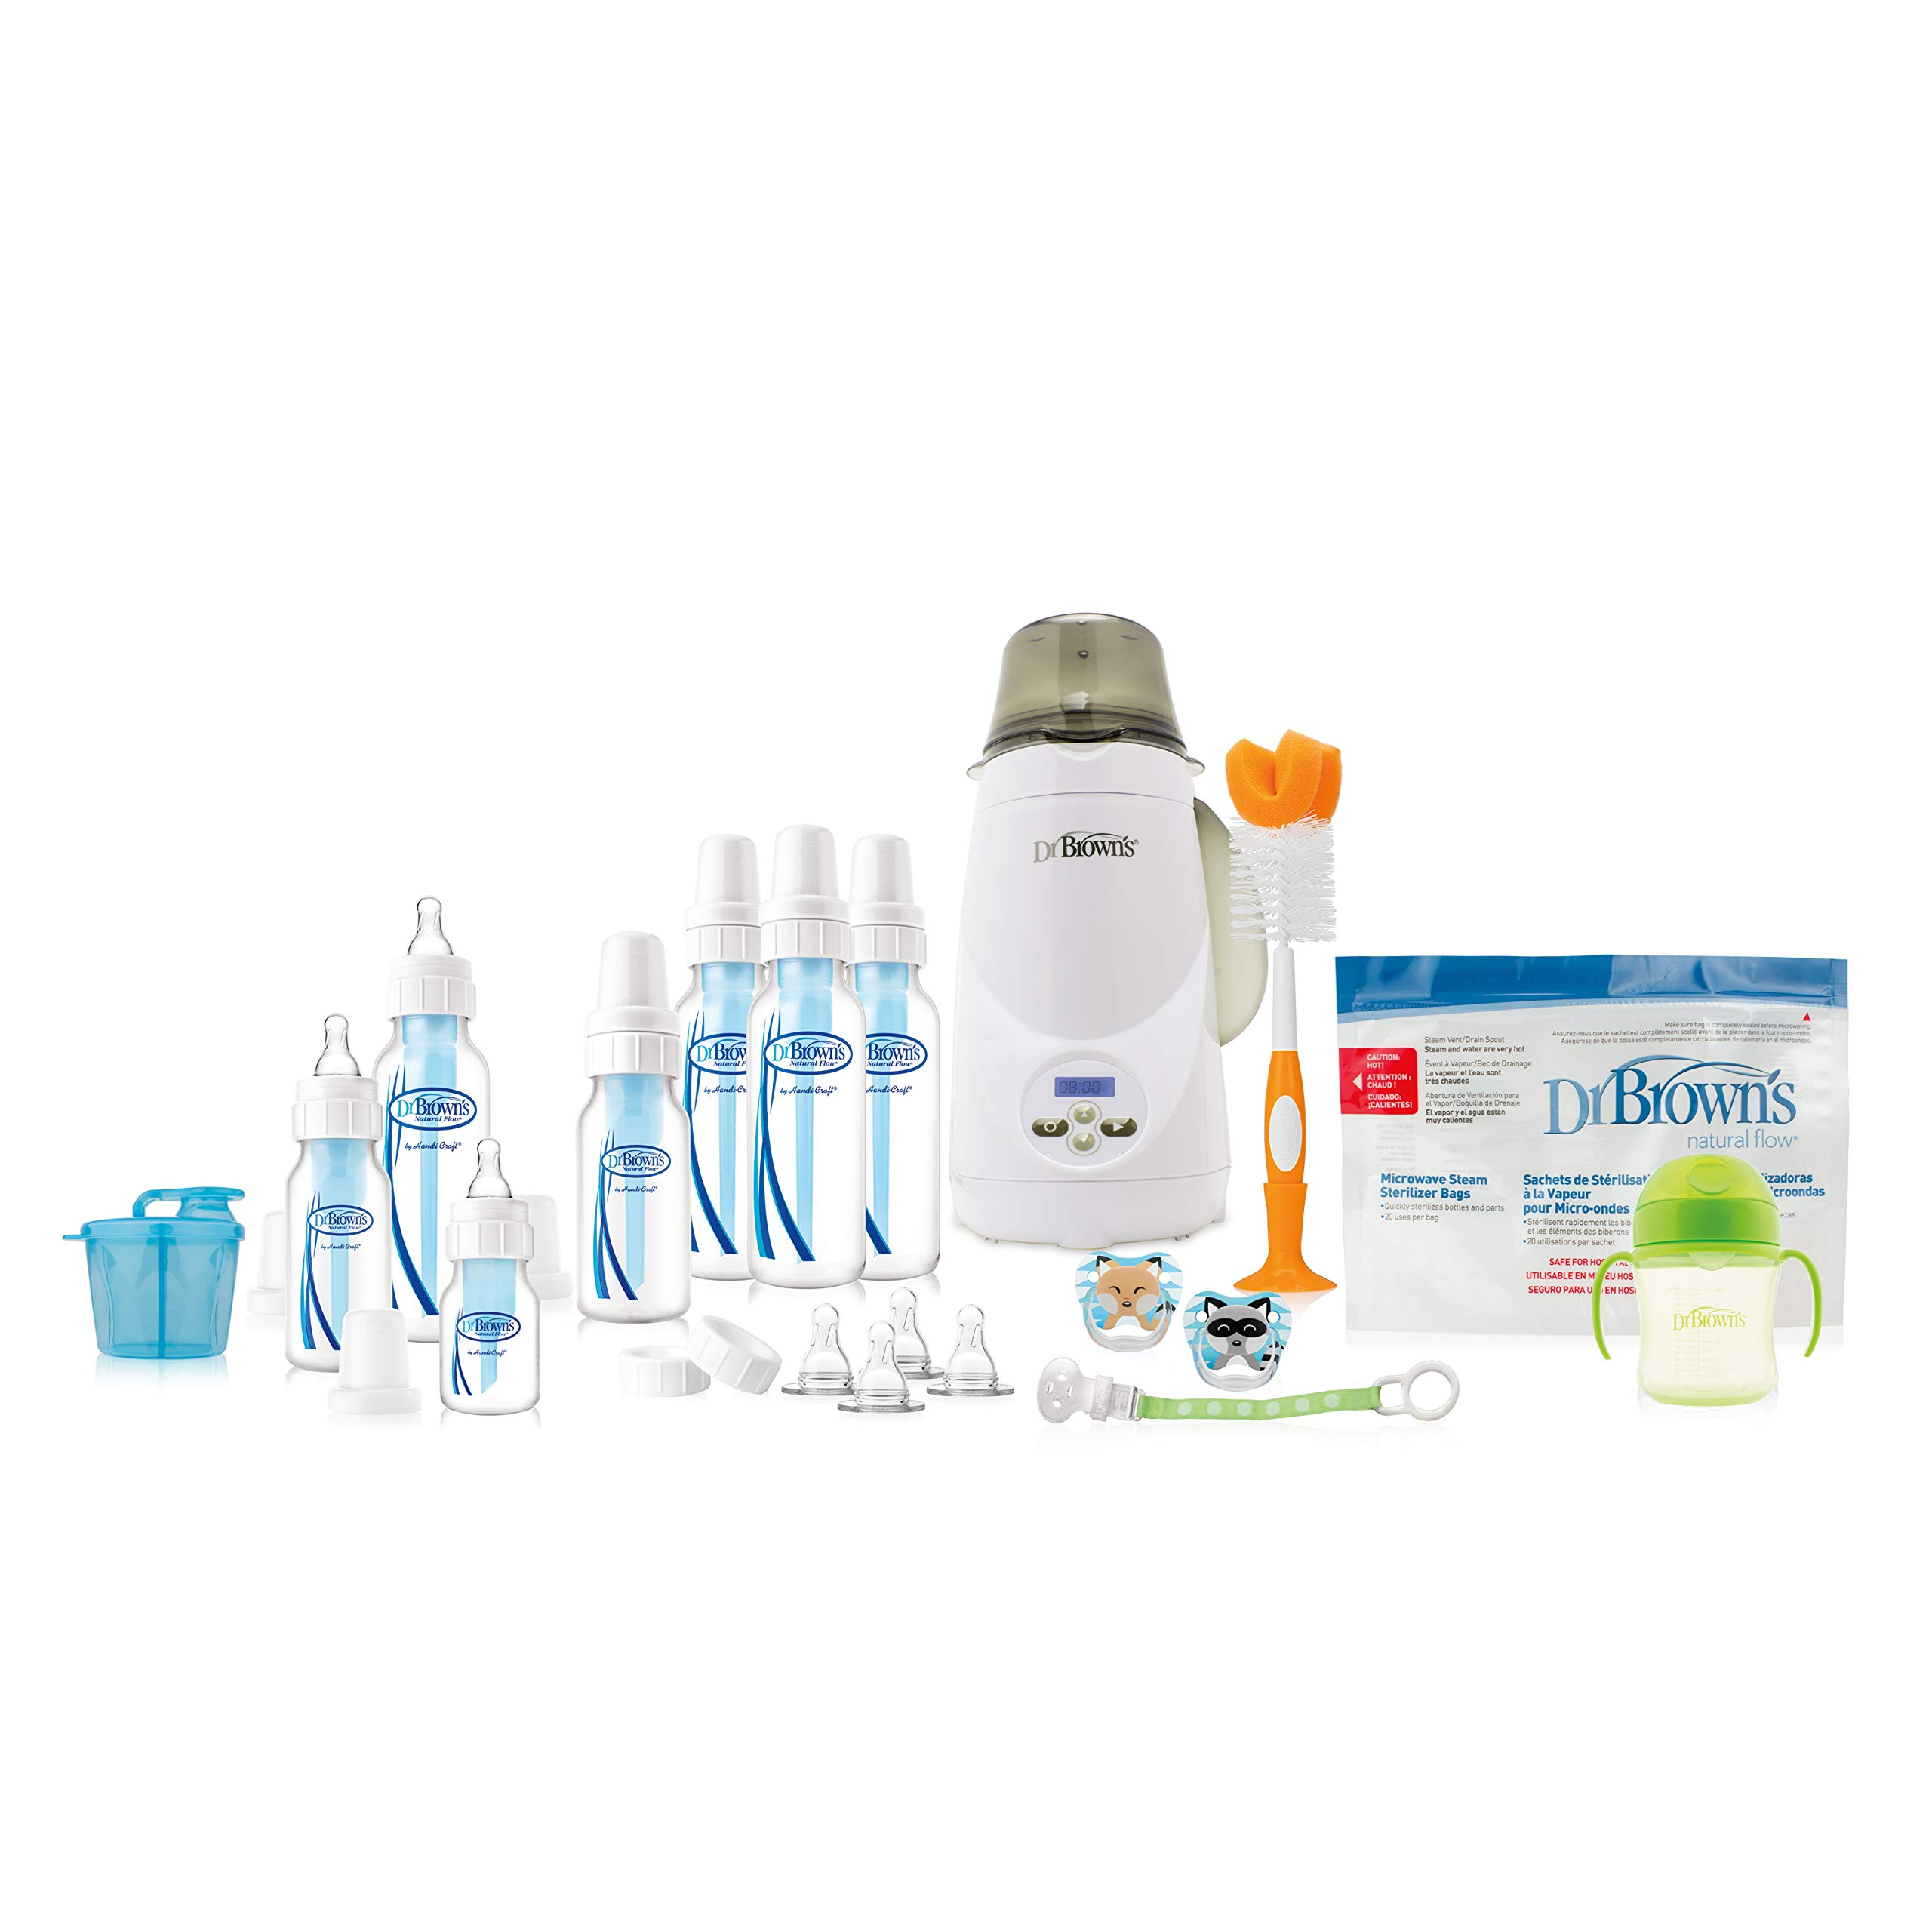 Dr. Brown's Baby Bottles All in One Gift with Deluxe Bottle Warmer